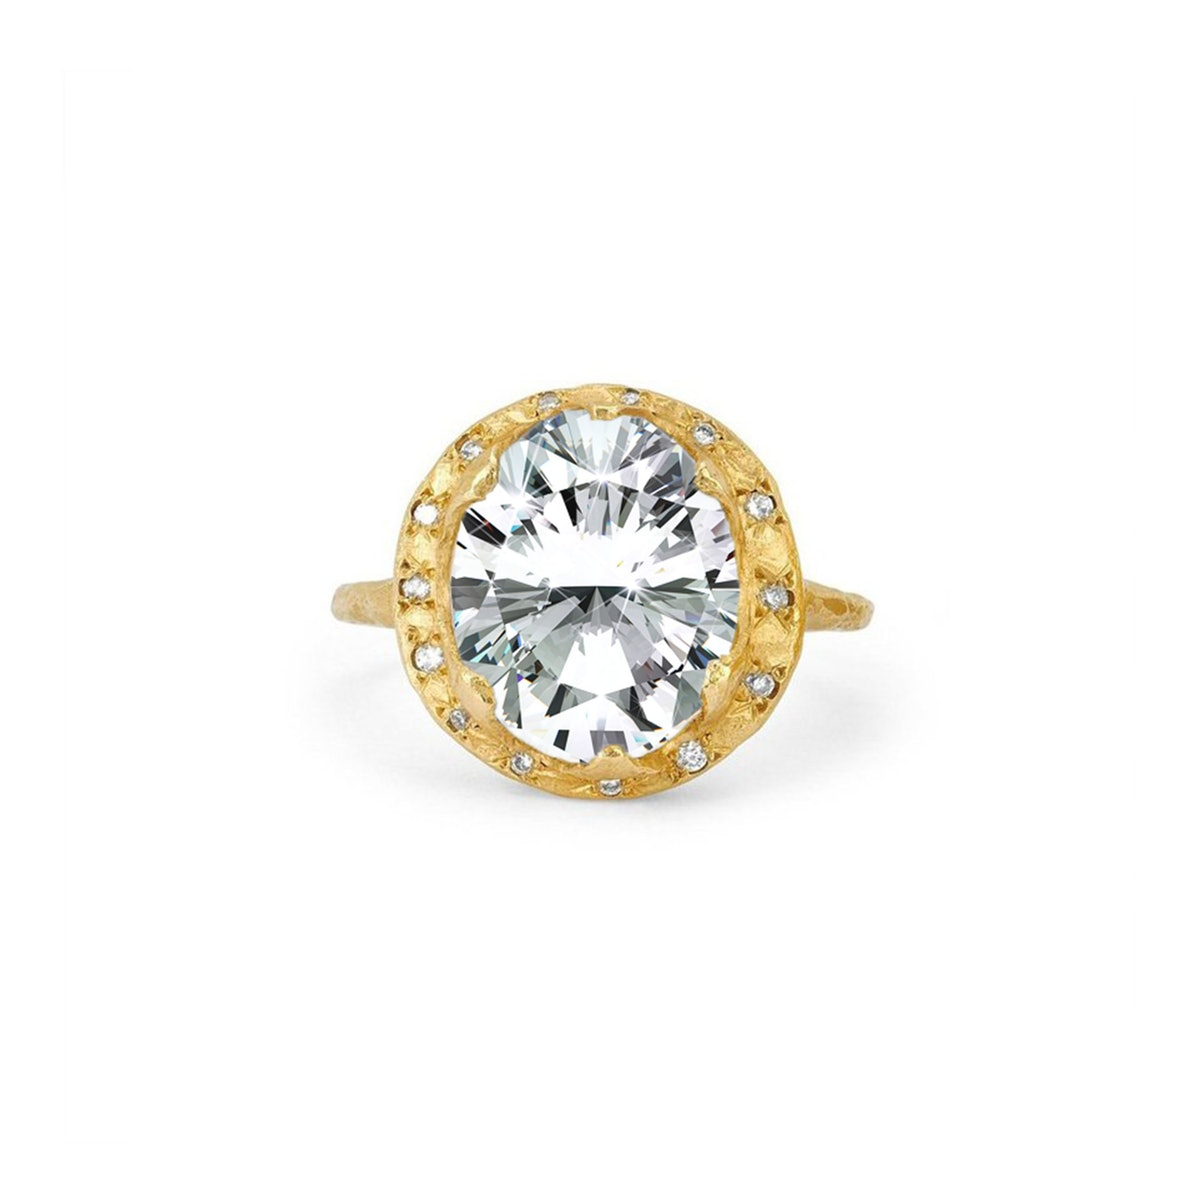 Baby Queen Oval Diamond Setting with Sprinkled Halo from Logan Hollowell.